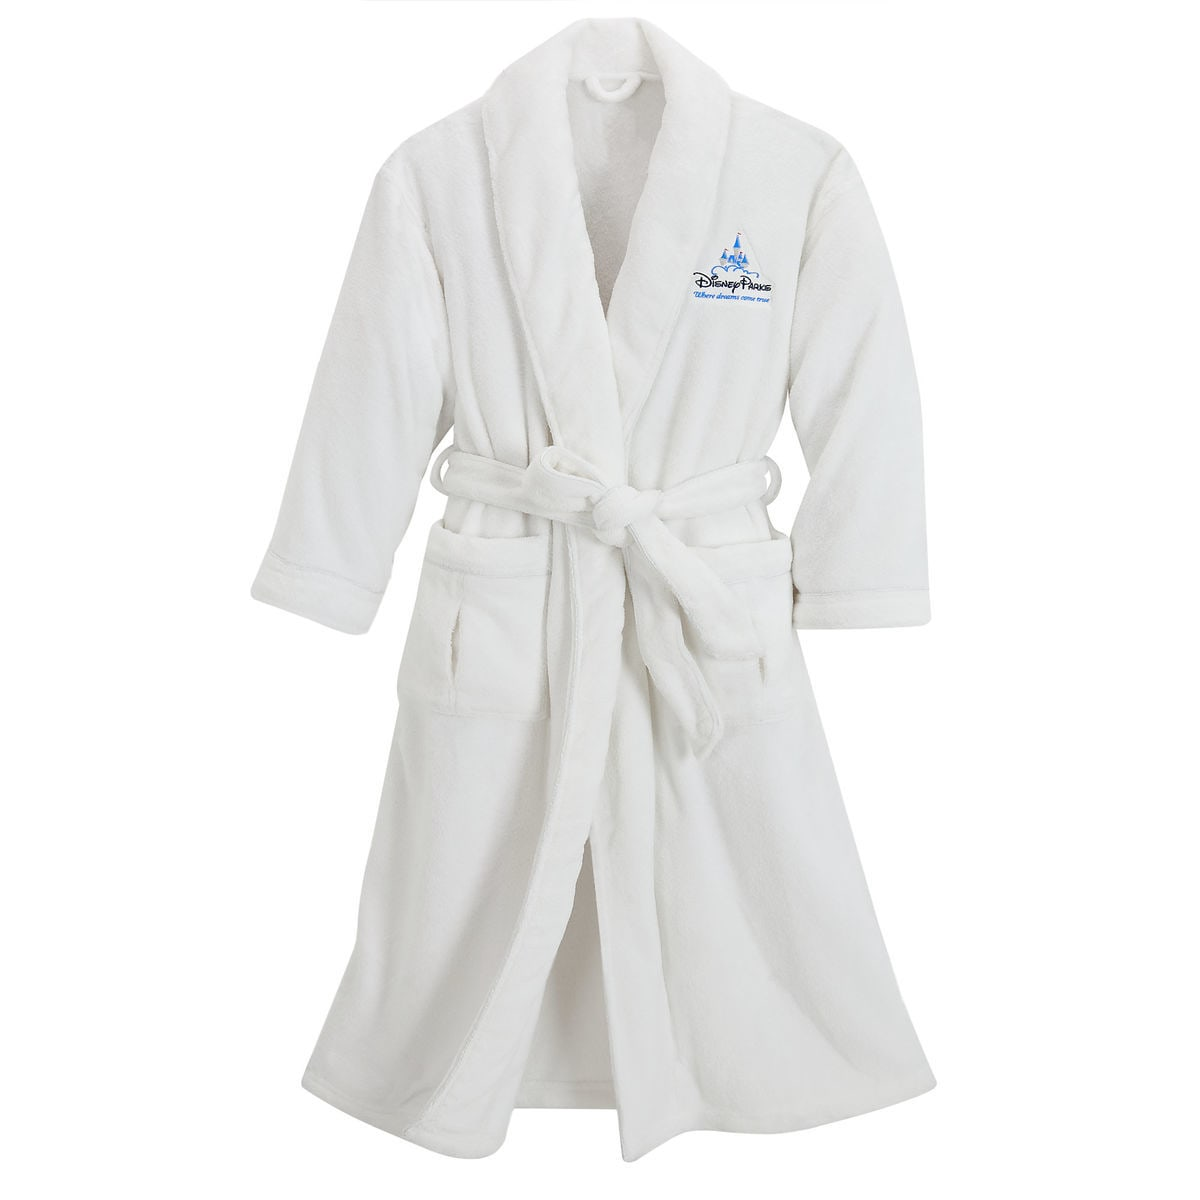 4c7b7eb8e5 Product Image of Disney Parks Robe for Adults - Exclusive   1